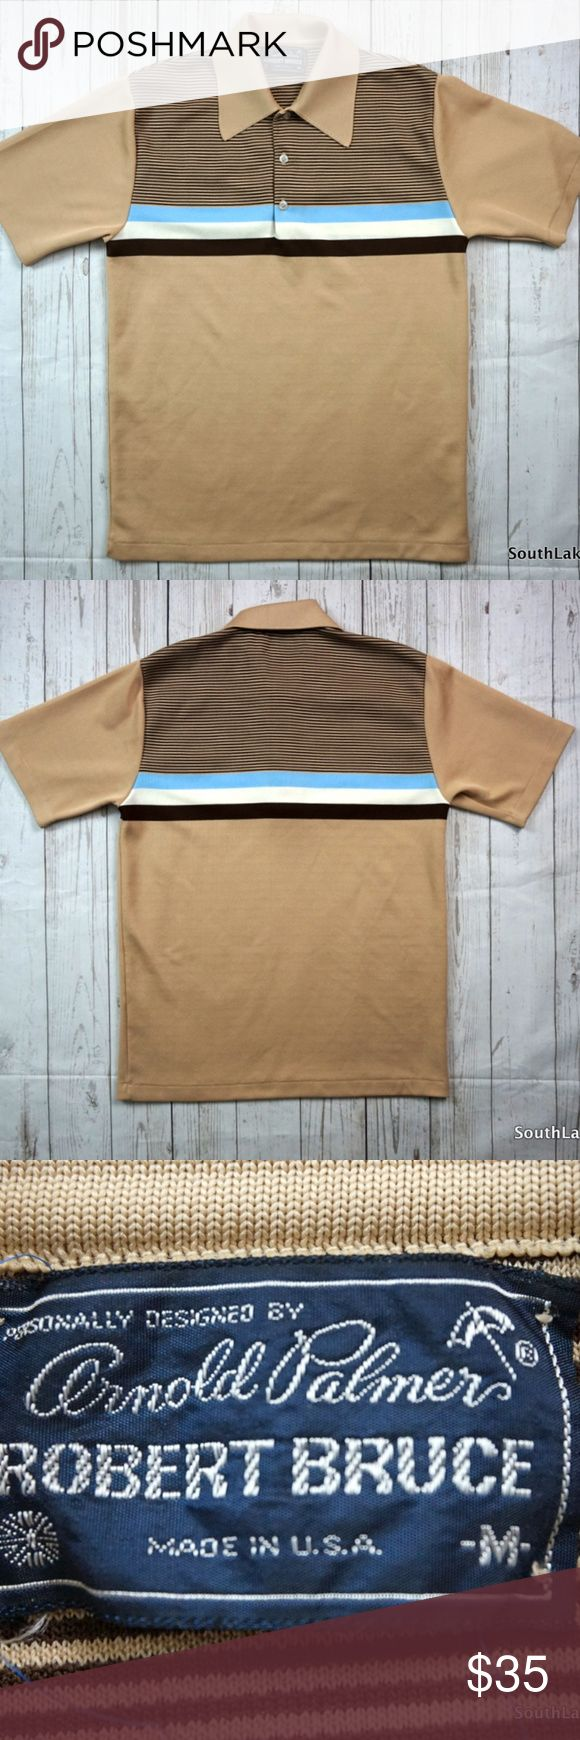 """Vintage 70s Arnold Palmer Polo Shirt Robert Bruce Vintage 70s Arnold Palmer Polo Shirt Robert Bruce  Brand:    Robert Bruce Color:      Beige/White/Beige Size:       Medium Material:  Polyester  Detailed Measurements: (Front Side of Garment has been measured laying flat on a table)  Sleeves:..............    9"""" inches  Chest:.................  19"""" inches Length:…..........    28"""" inches   Ships in 1 business day or less from a clean and smoke free environment. Bundle to Save!  Thanks! Arnold…"""